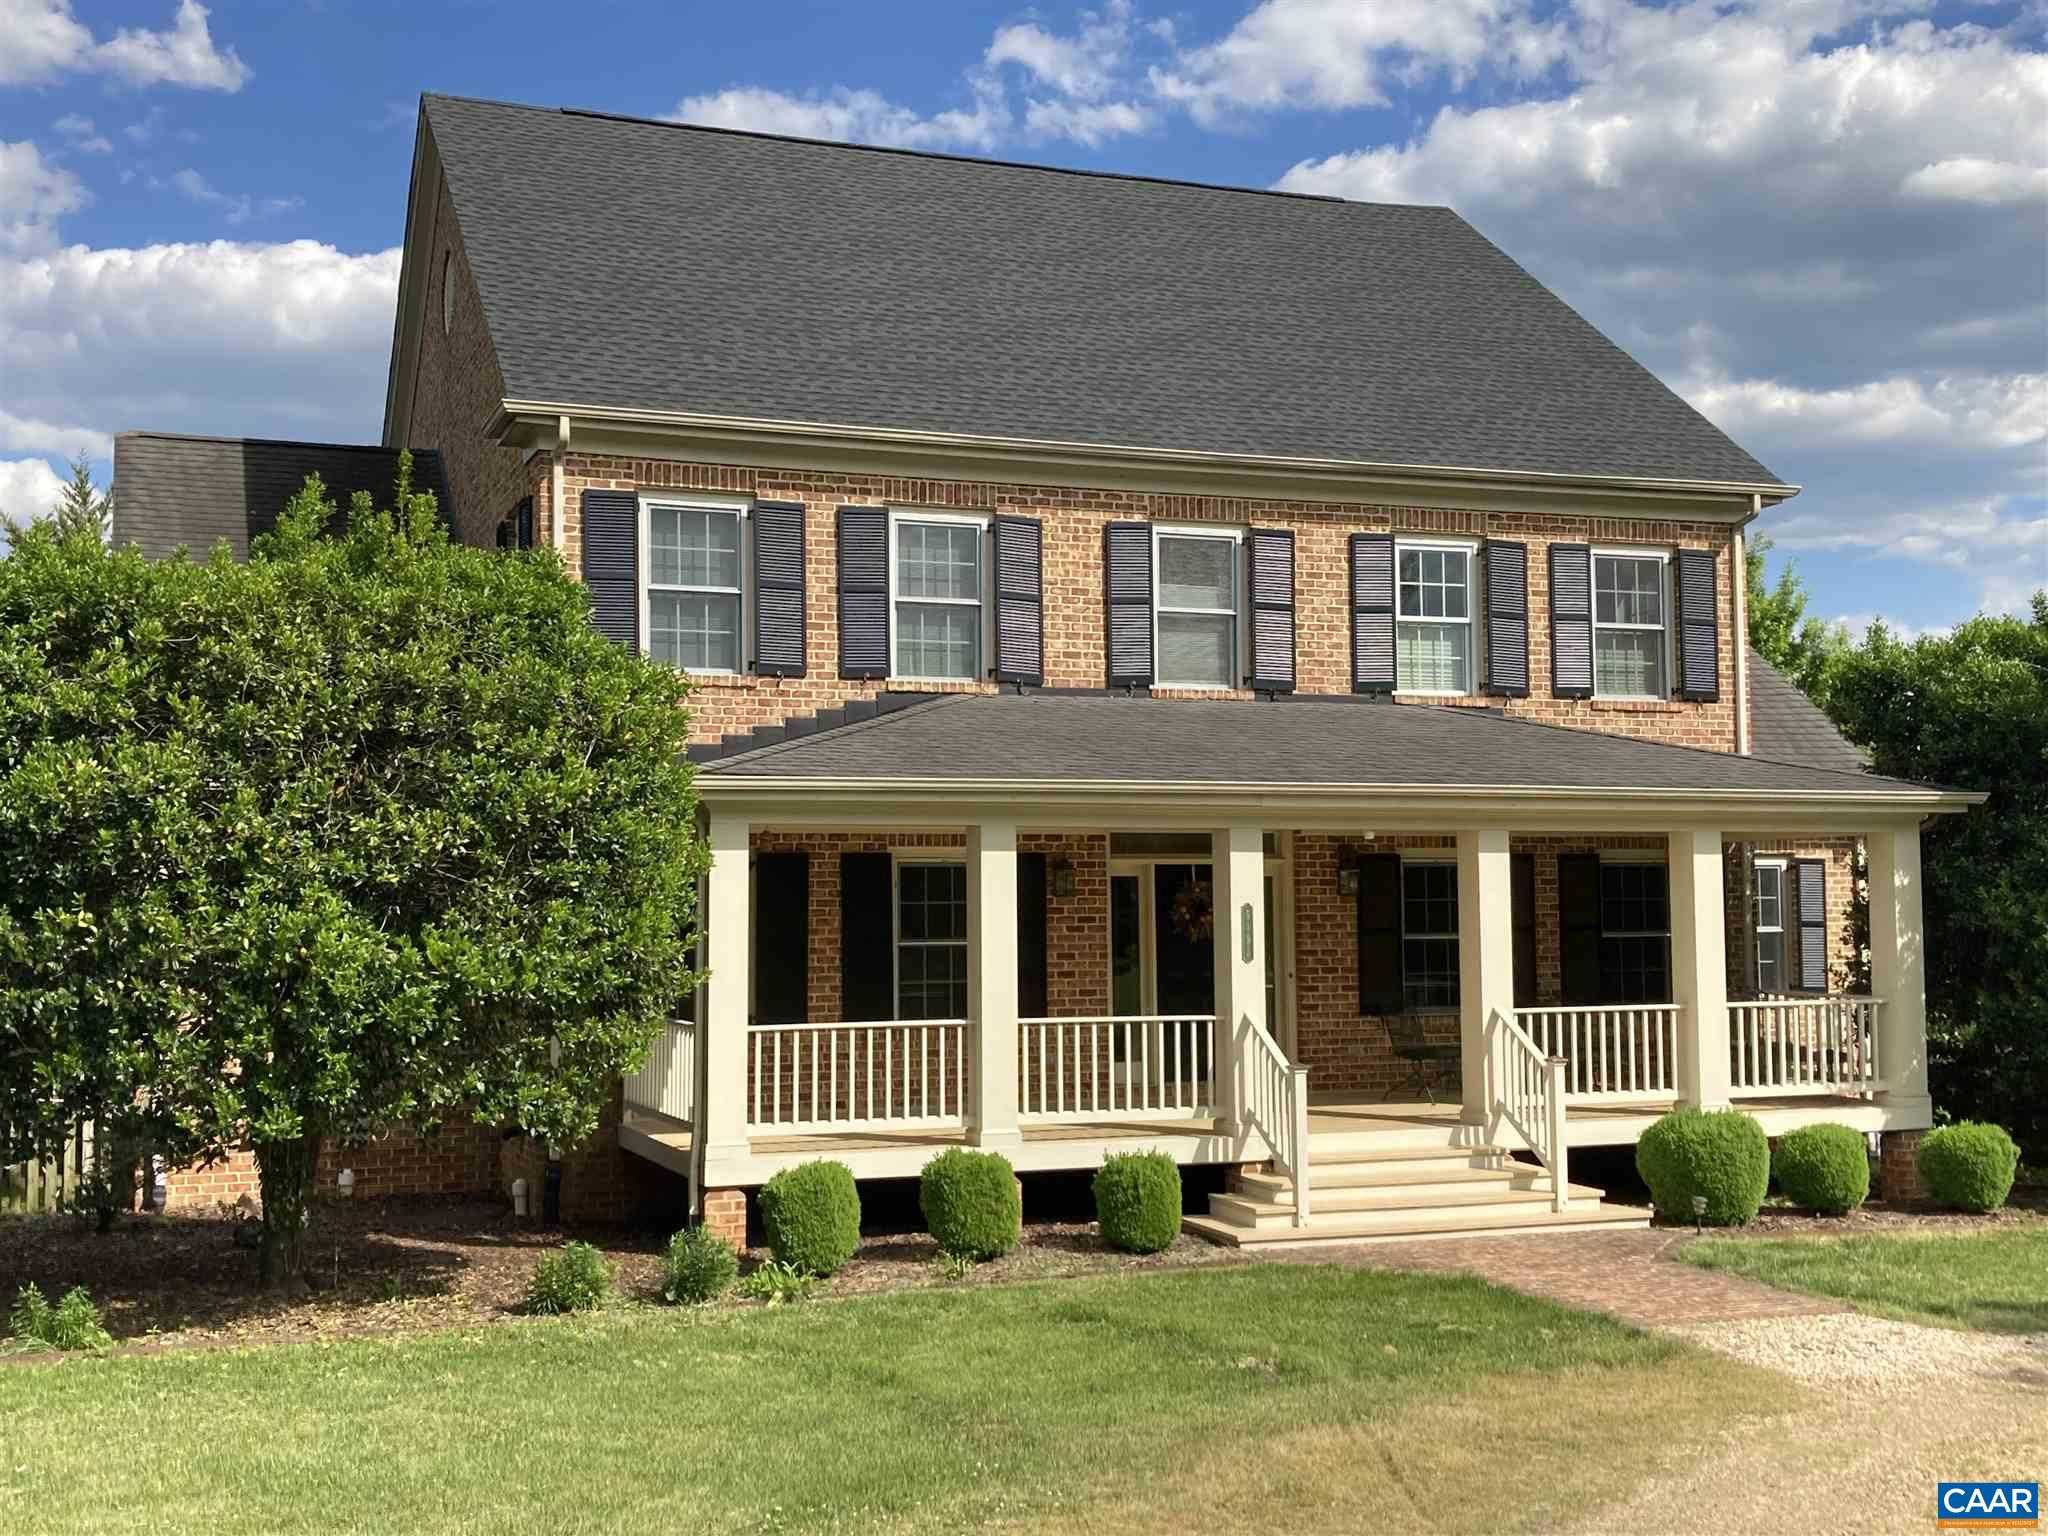 $739,000 - 5Br/5Ba -  for Sale in Coventry, Barboursville